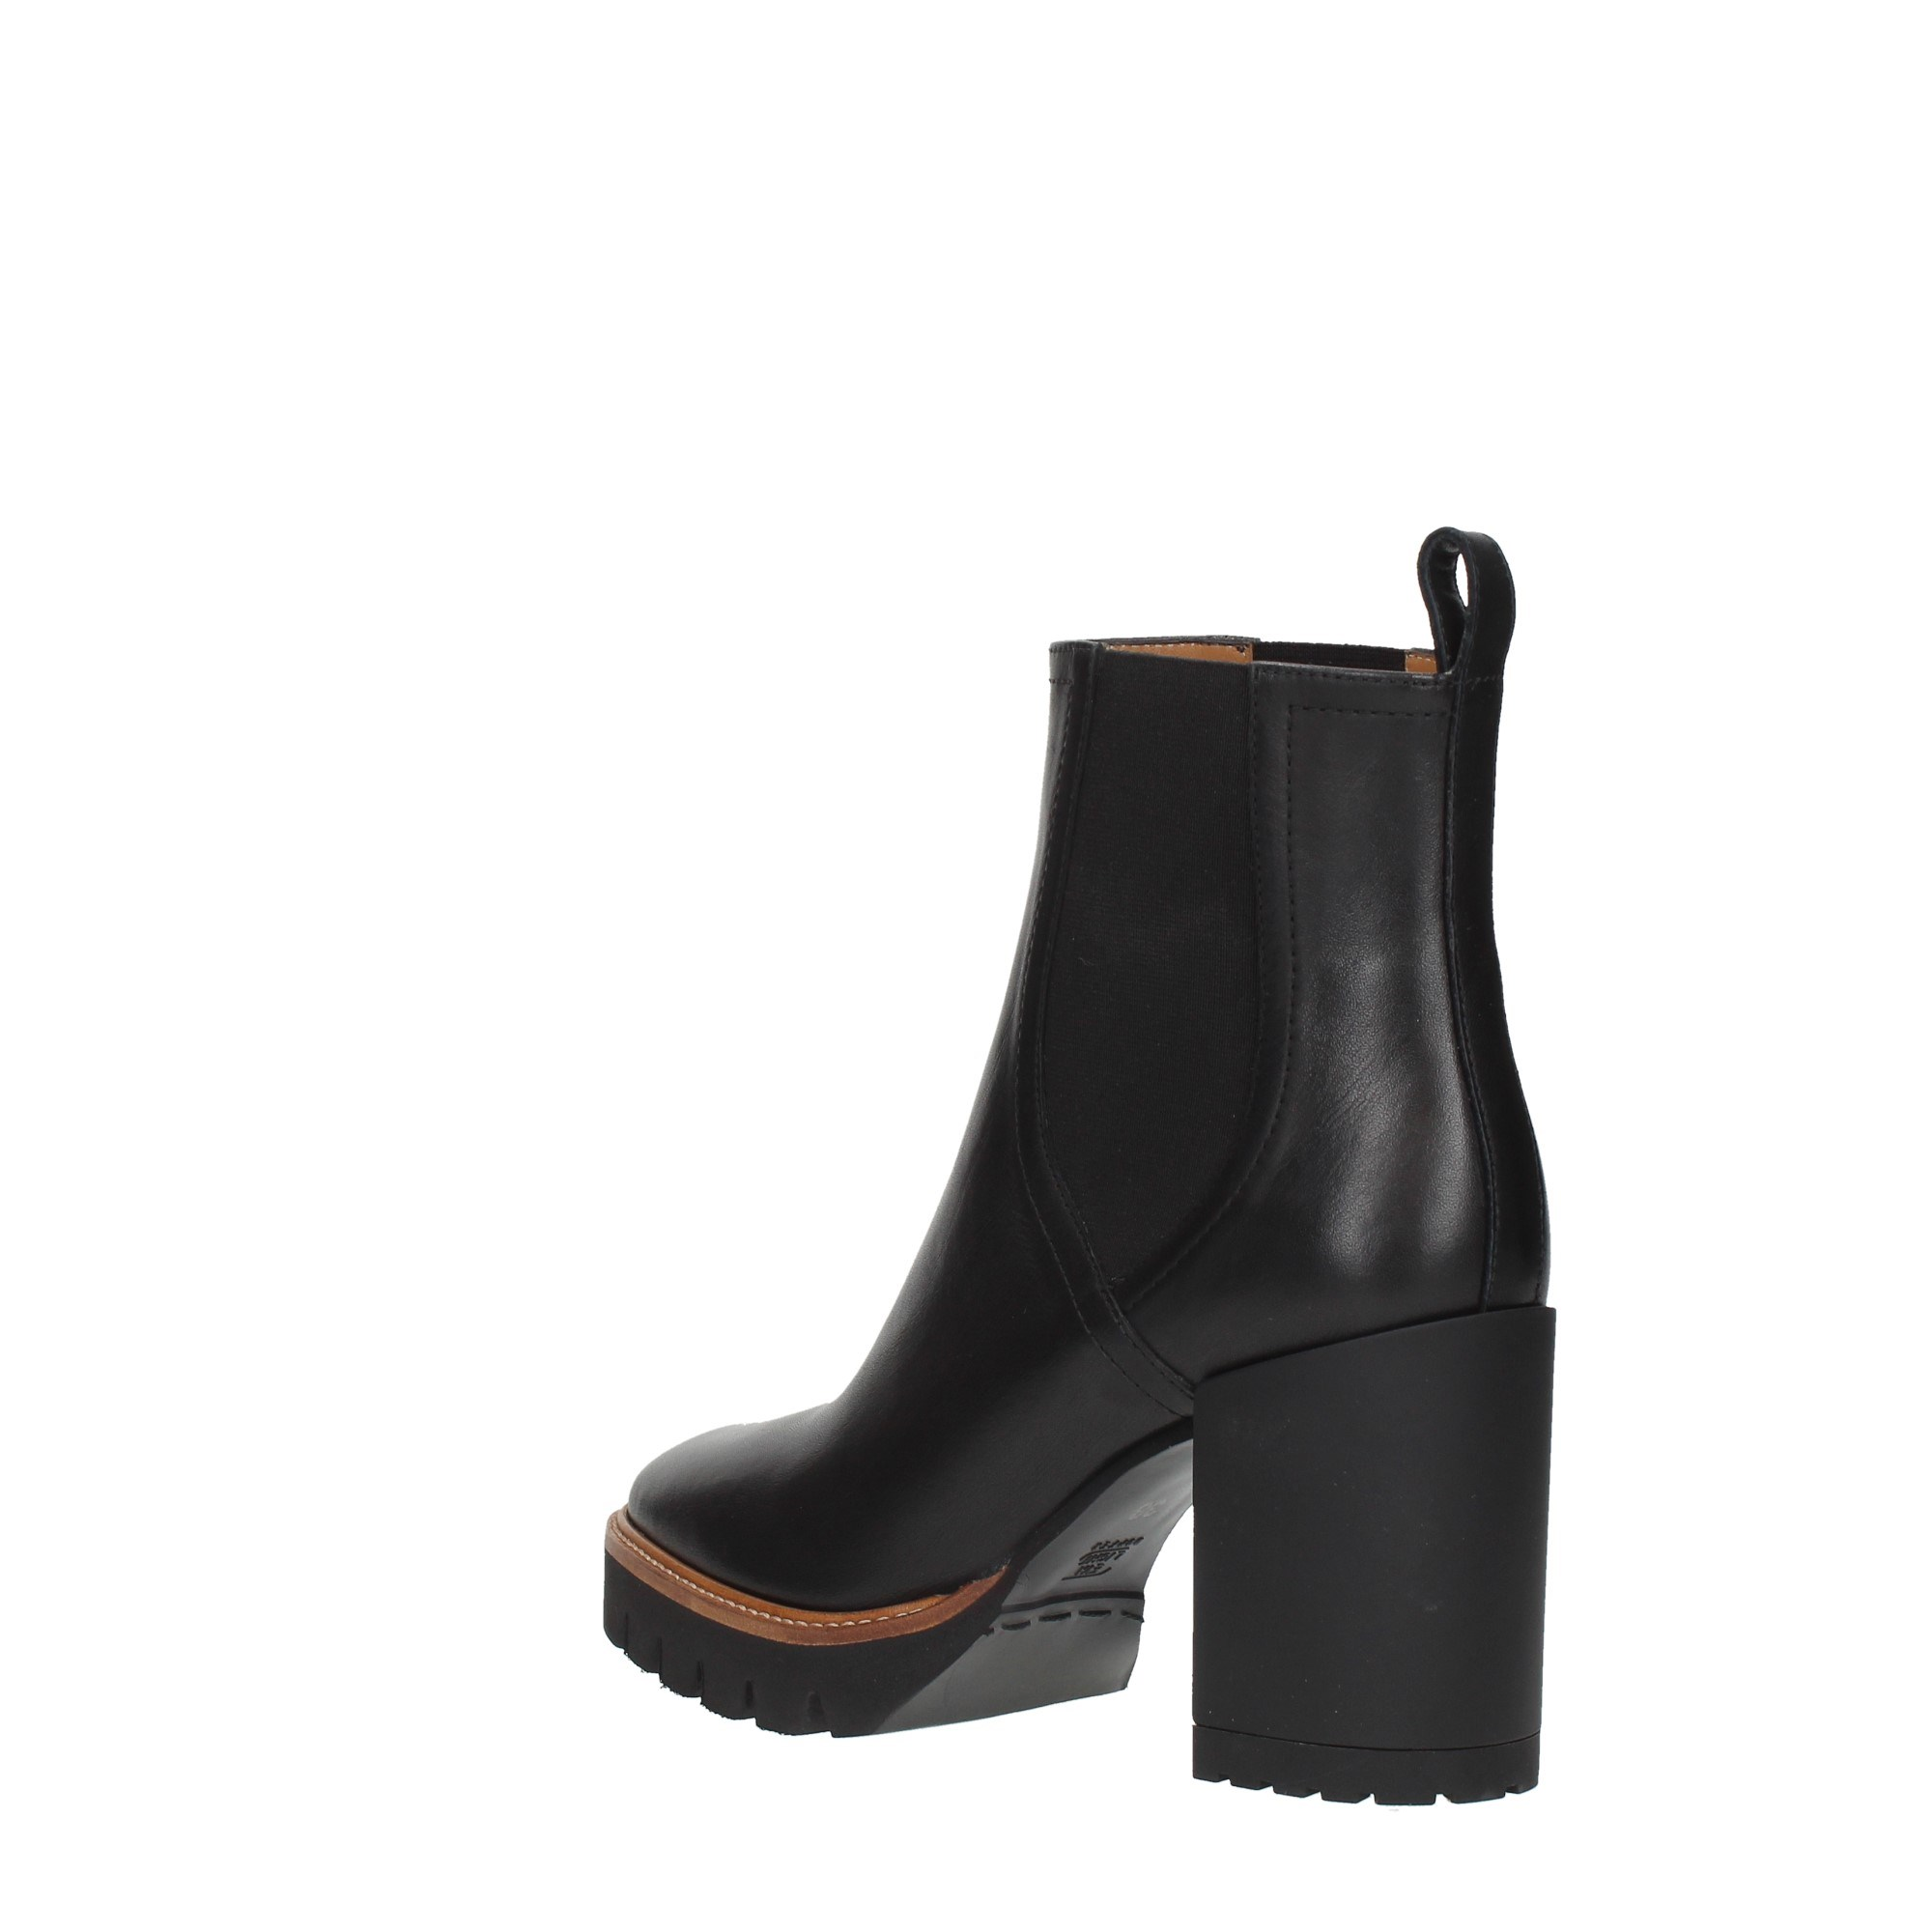 Bervicato Shoes Women Booties Black 3811